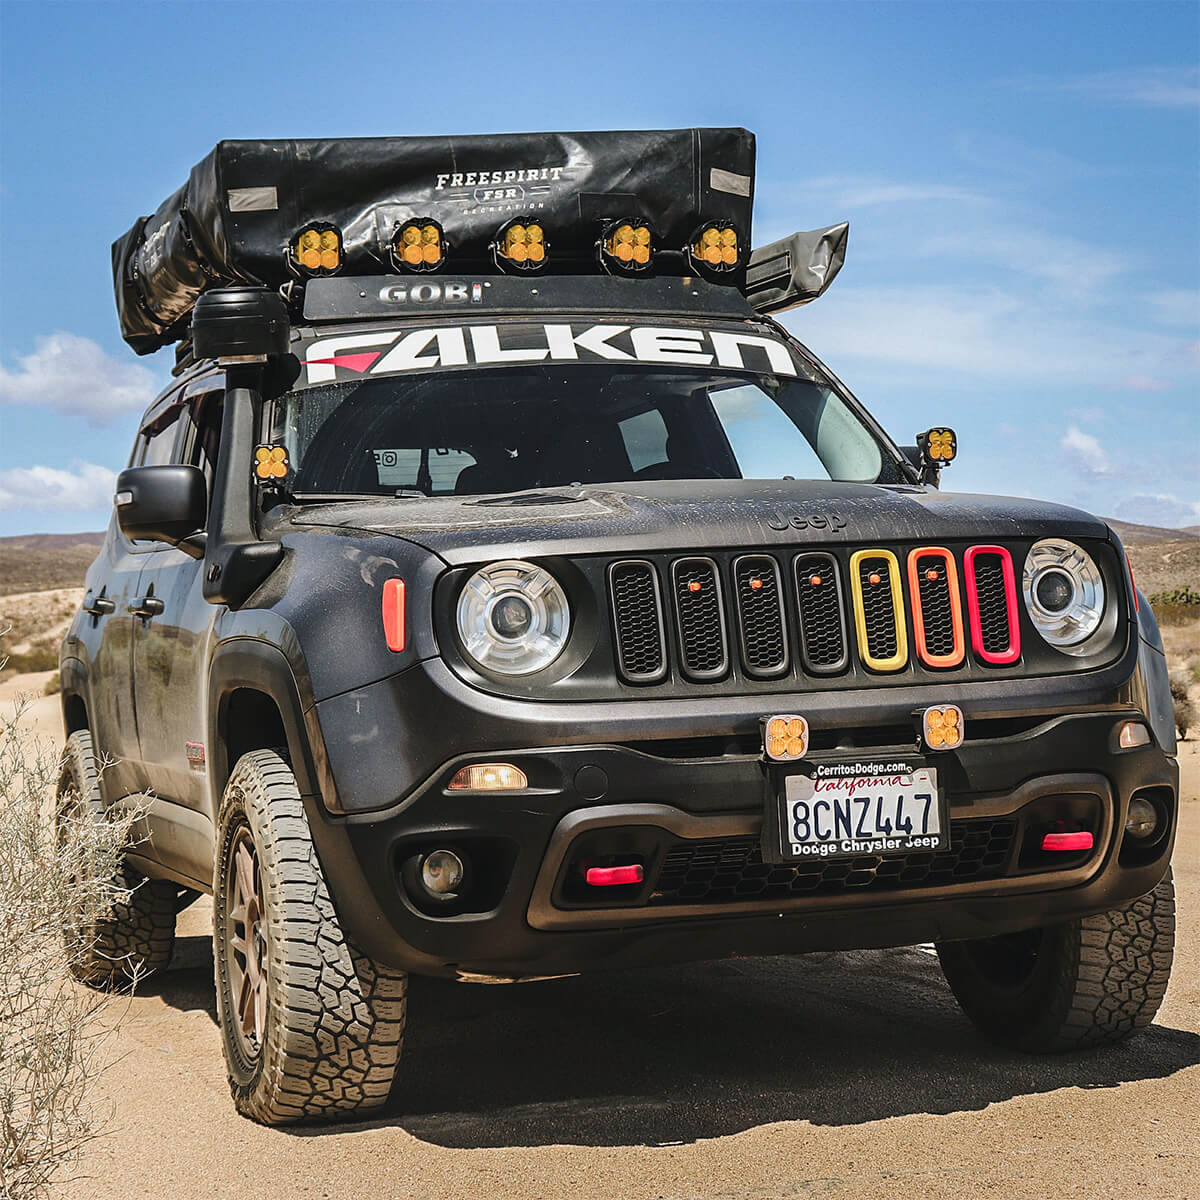 Jeep Renegade overland off-road build